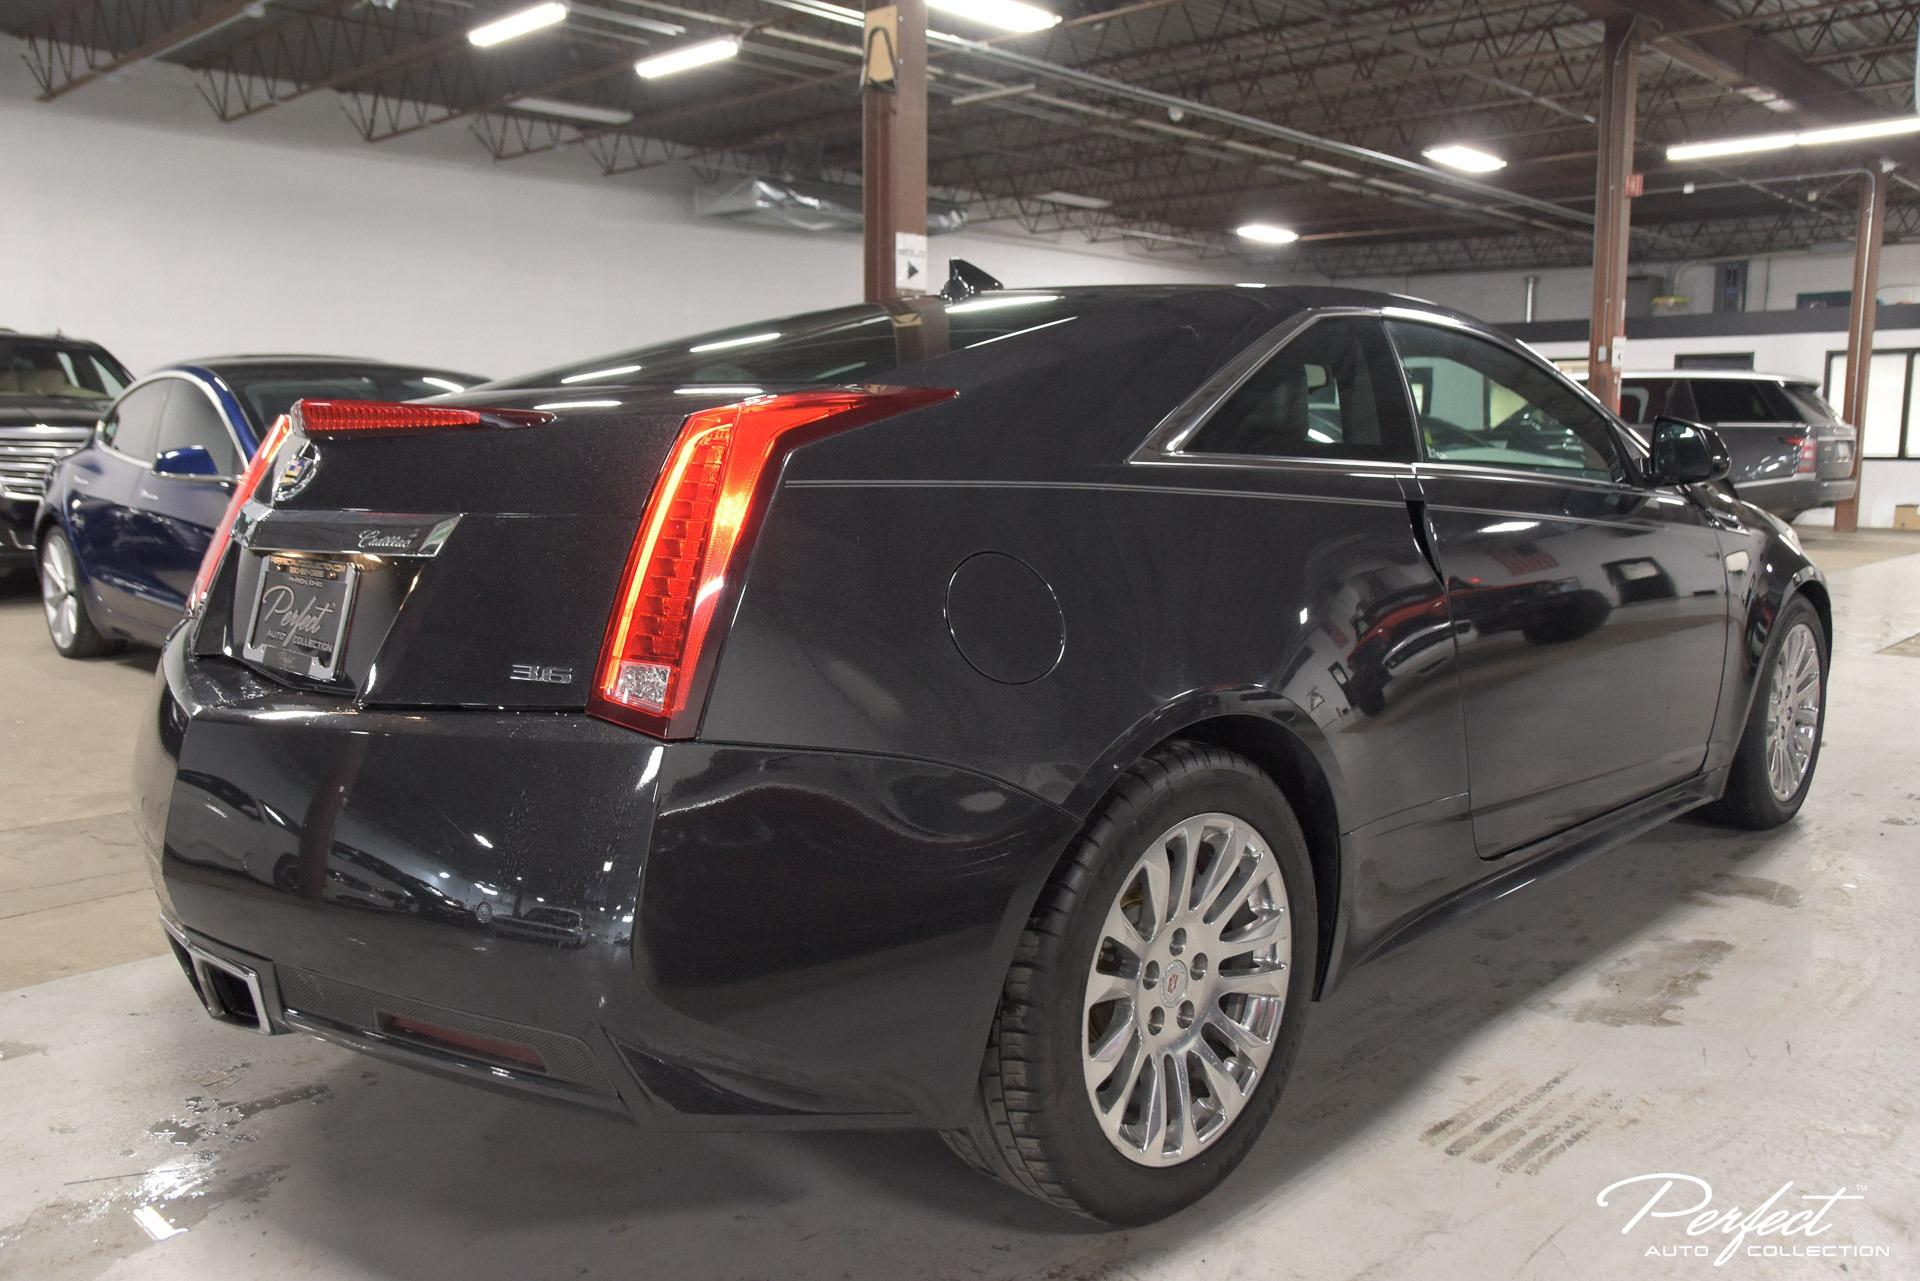 Used 2012 Cadillac CTS 3.6L Premium for sale $11,895 at Perfect Auto Collection in Akron OH 44310 4